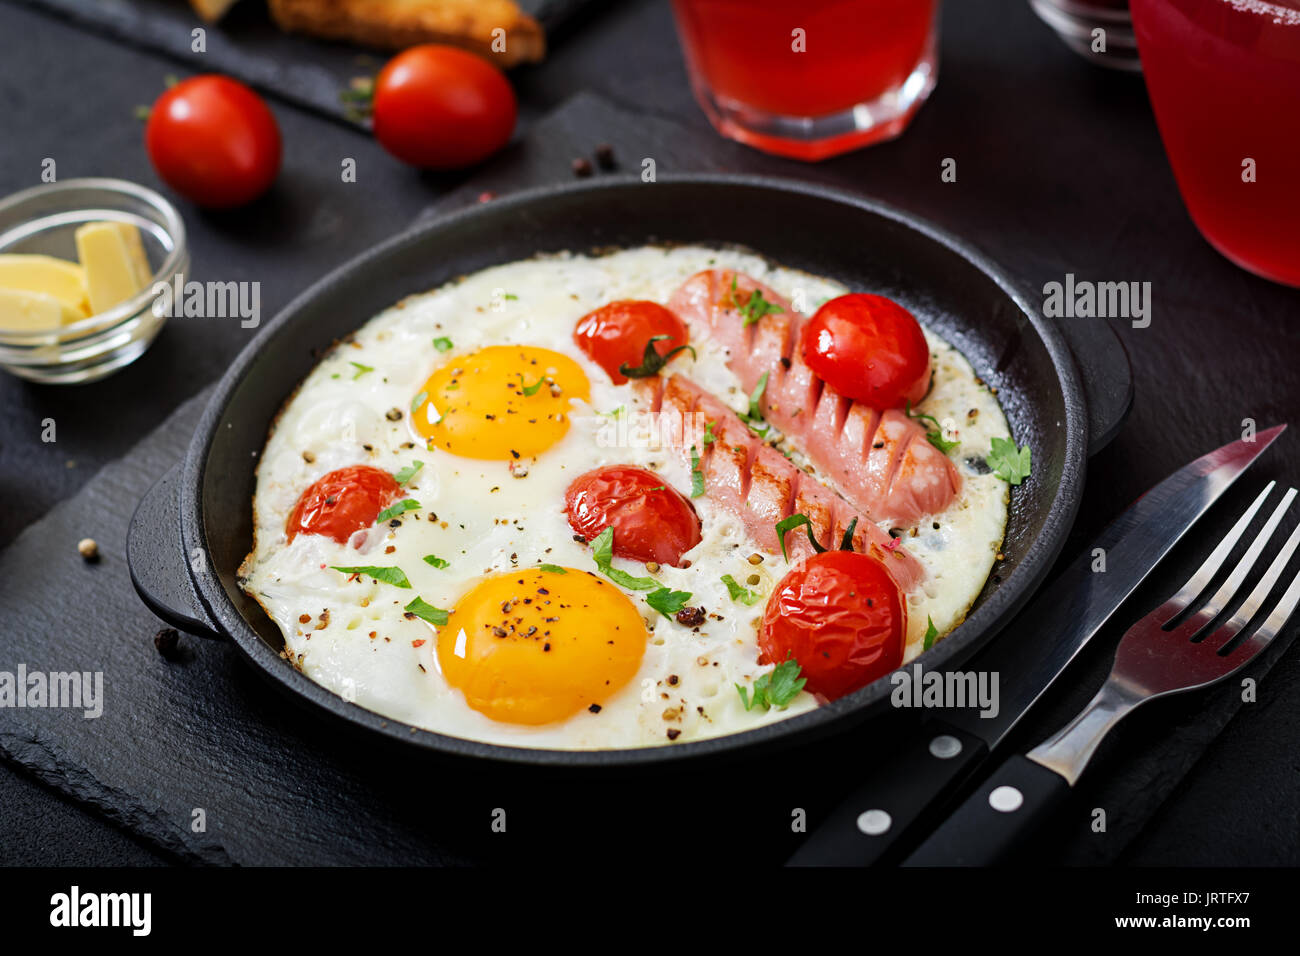 English breakfast - fried egg,  tomatoes and sausage. - Stock Image